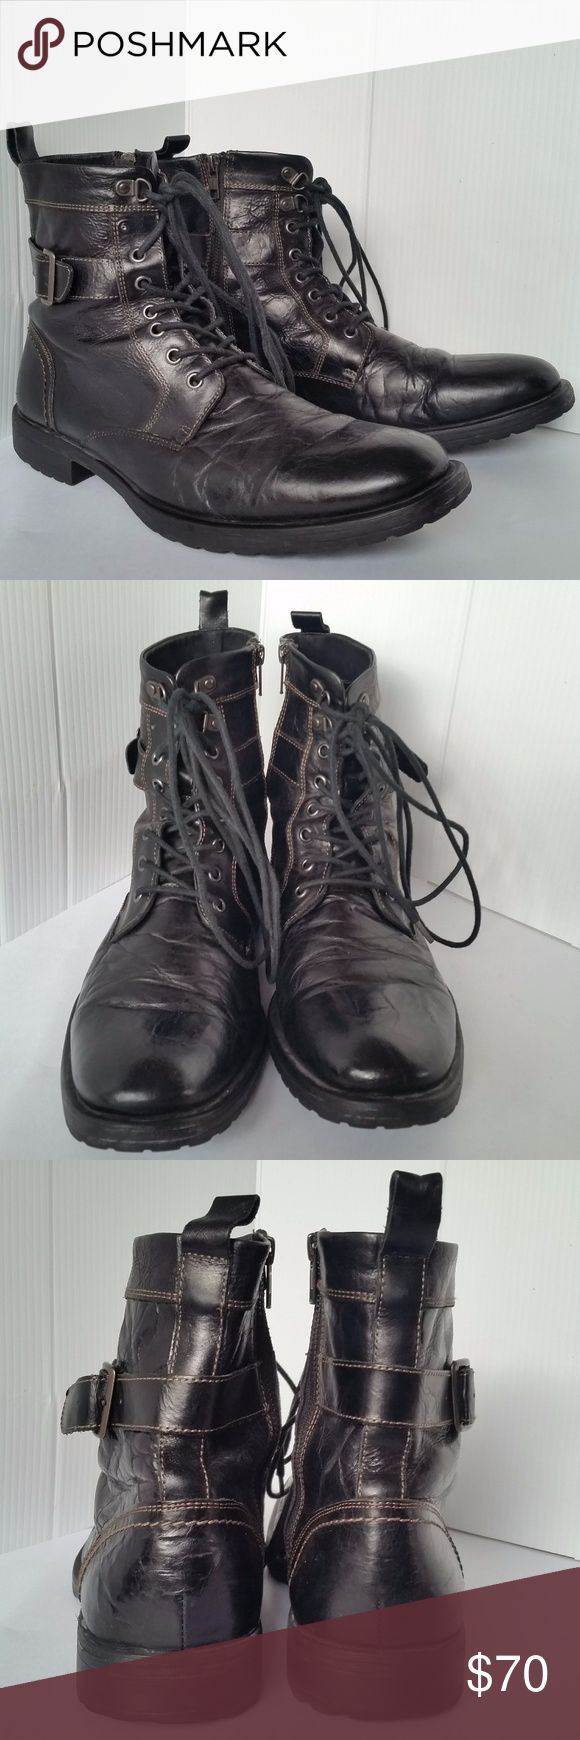 Aston Grey Rockcastle 2 Black Combat Boots Size 11 Aston Grey Rockcastle 2 Black Combat Boots  Size 11  Distressed Rugged Steampunk Look Great condition, shows some wear, the sole is a little worn , but the upper is great! Aston Grey Shoes Boots